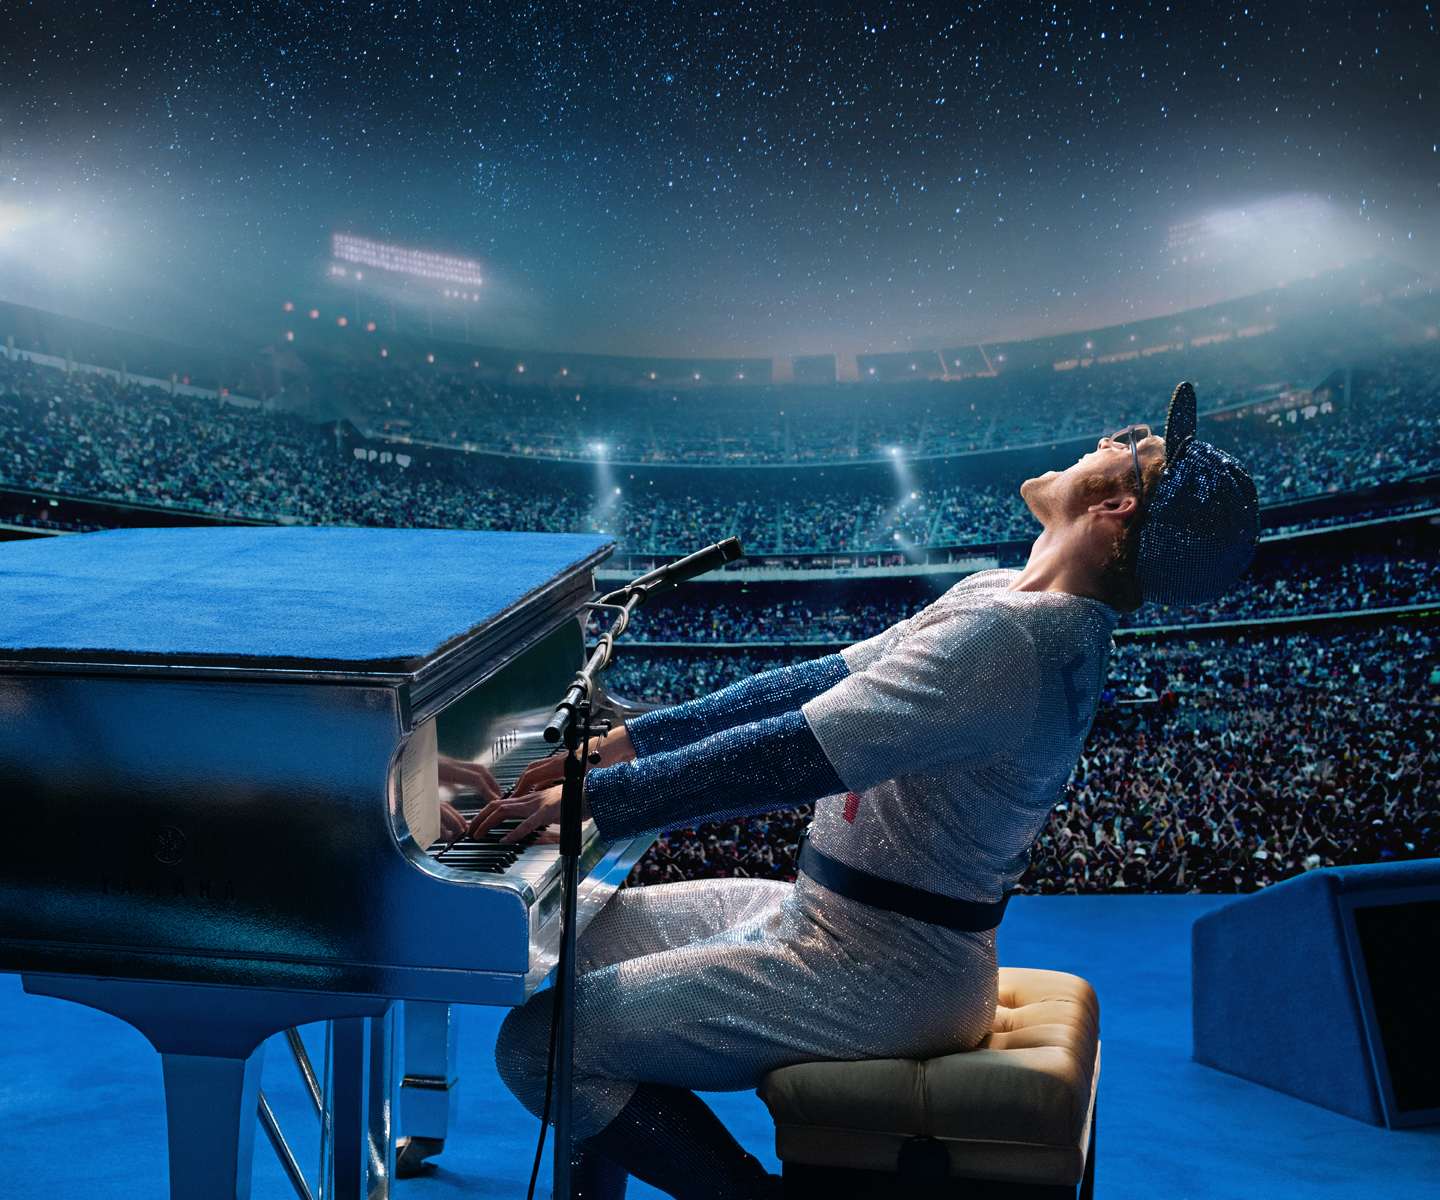 Taron Egerton as Elton John performing in The Dodgers Stadium in Rocketman. Photo c/o Paramount Pictures.